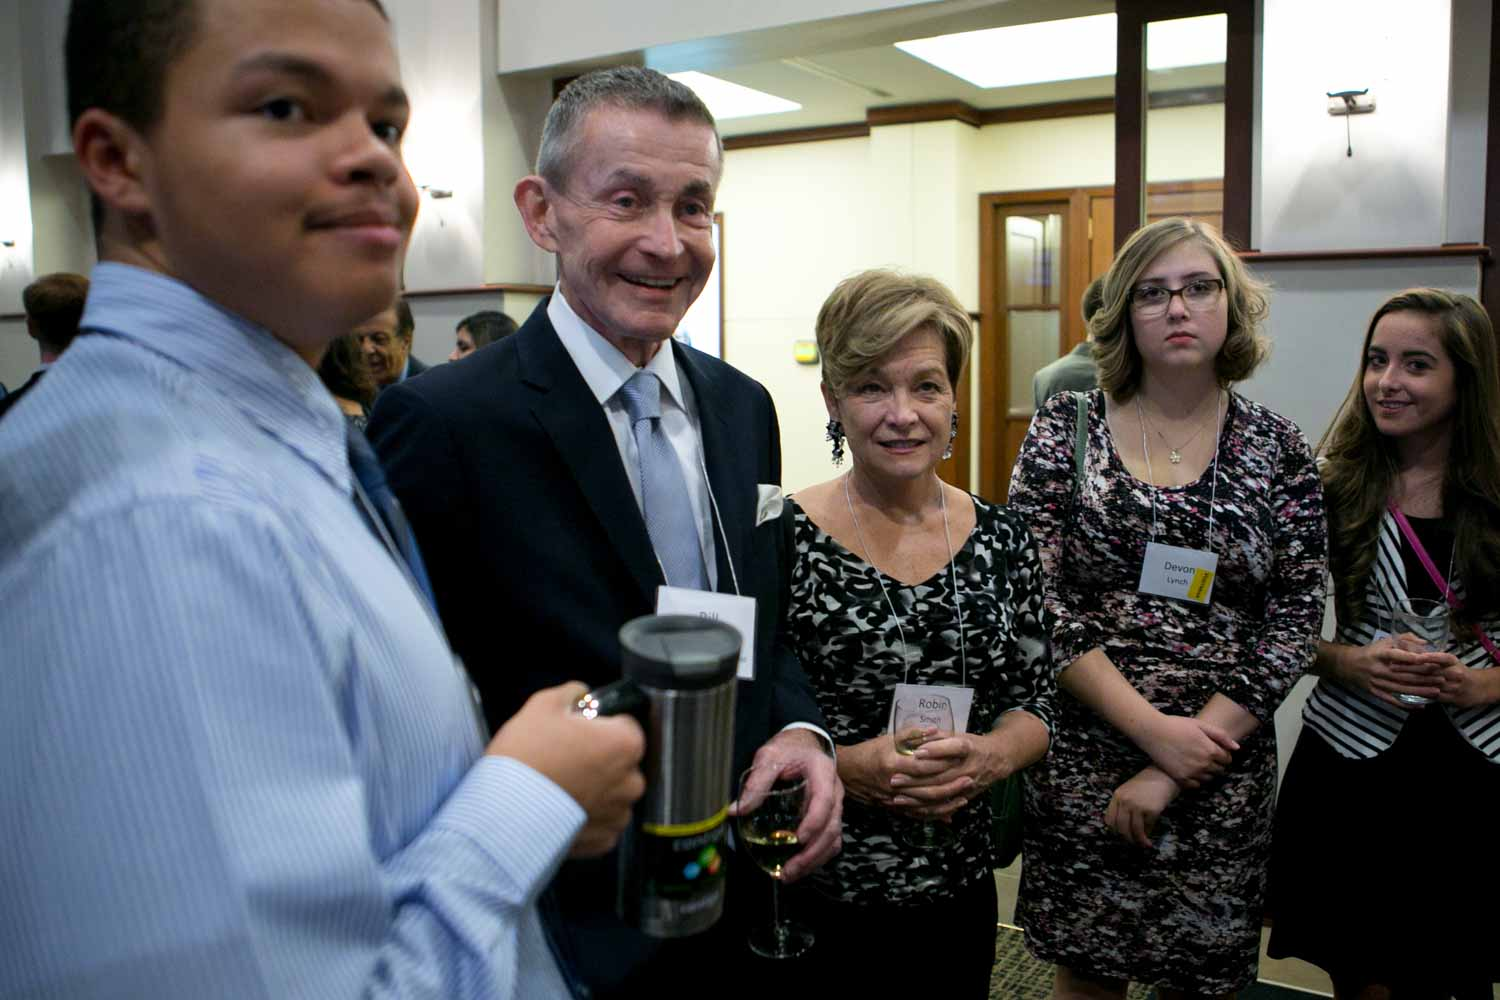 Bill Plante, a Senior White House correspondent for CBS News, mingles with students before ceremonies begin. Plante has covered the administrations of Ronald Reagan (beginning in 1981), Bill Clinton, George W. Bush and Barack Obama as well as every presidential campaign since 1968.